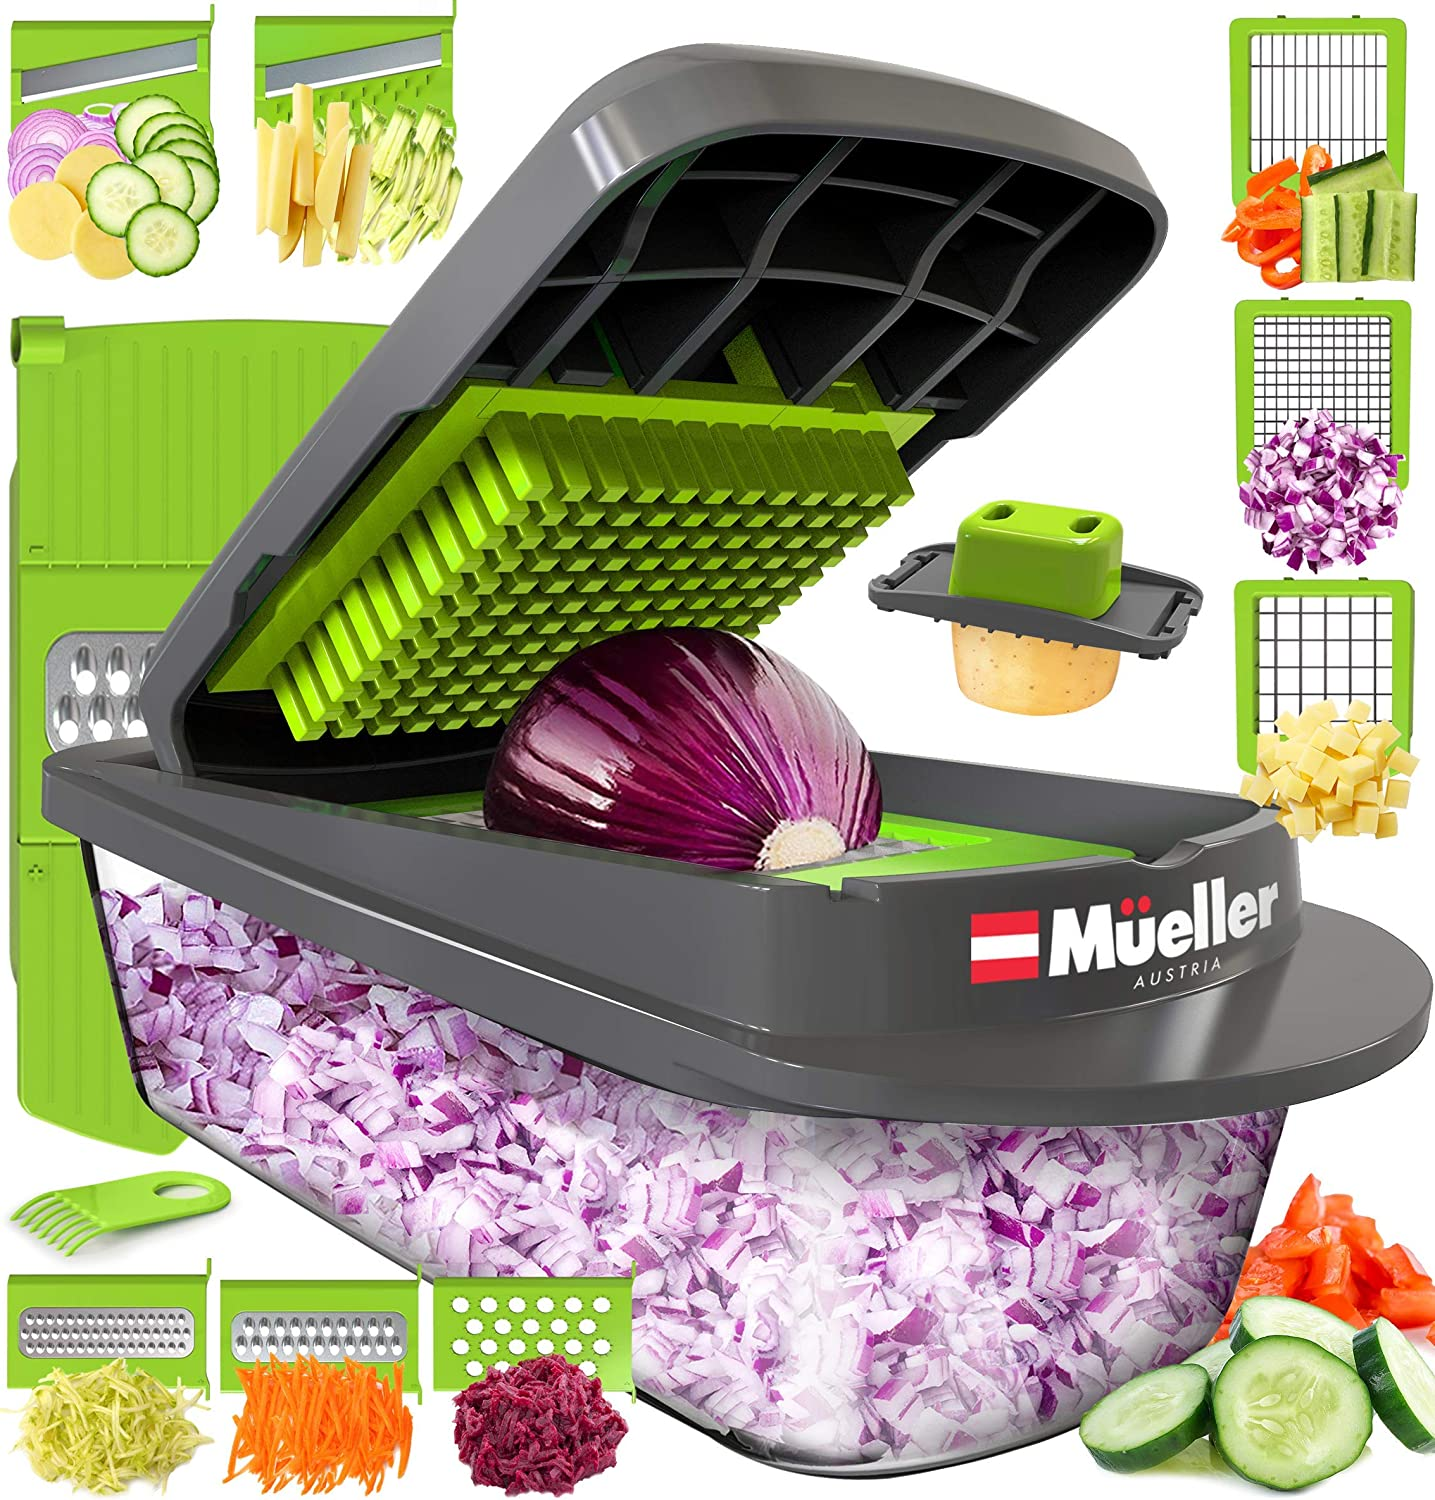 Mueller Austria Pro-Series Onion Chopper, Slicer, Vegetable Chopper, Cutter, Dicer, Spiralizer Vegetable Slicer with Container and 8 Blades